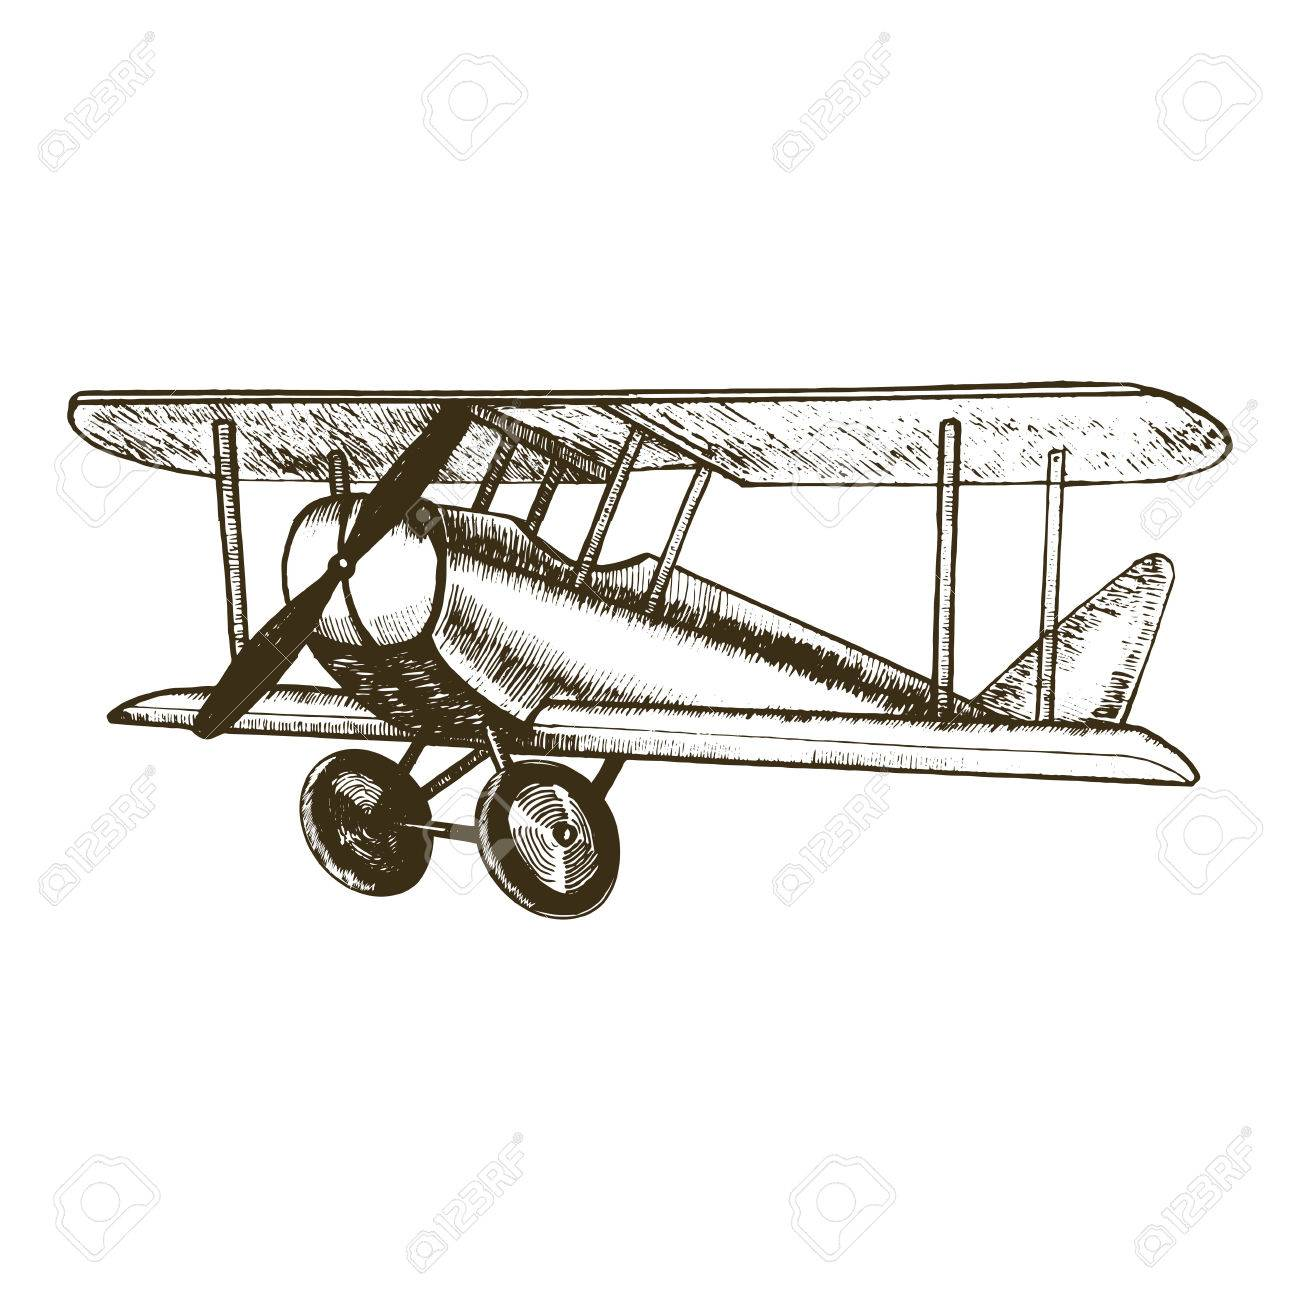 Retro Plane Hand Draw Sketch Vintage Biplane With Propeller Can